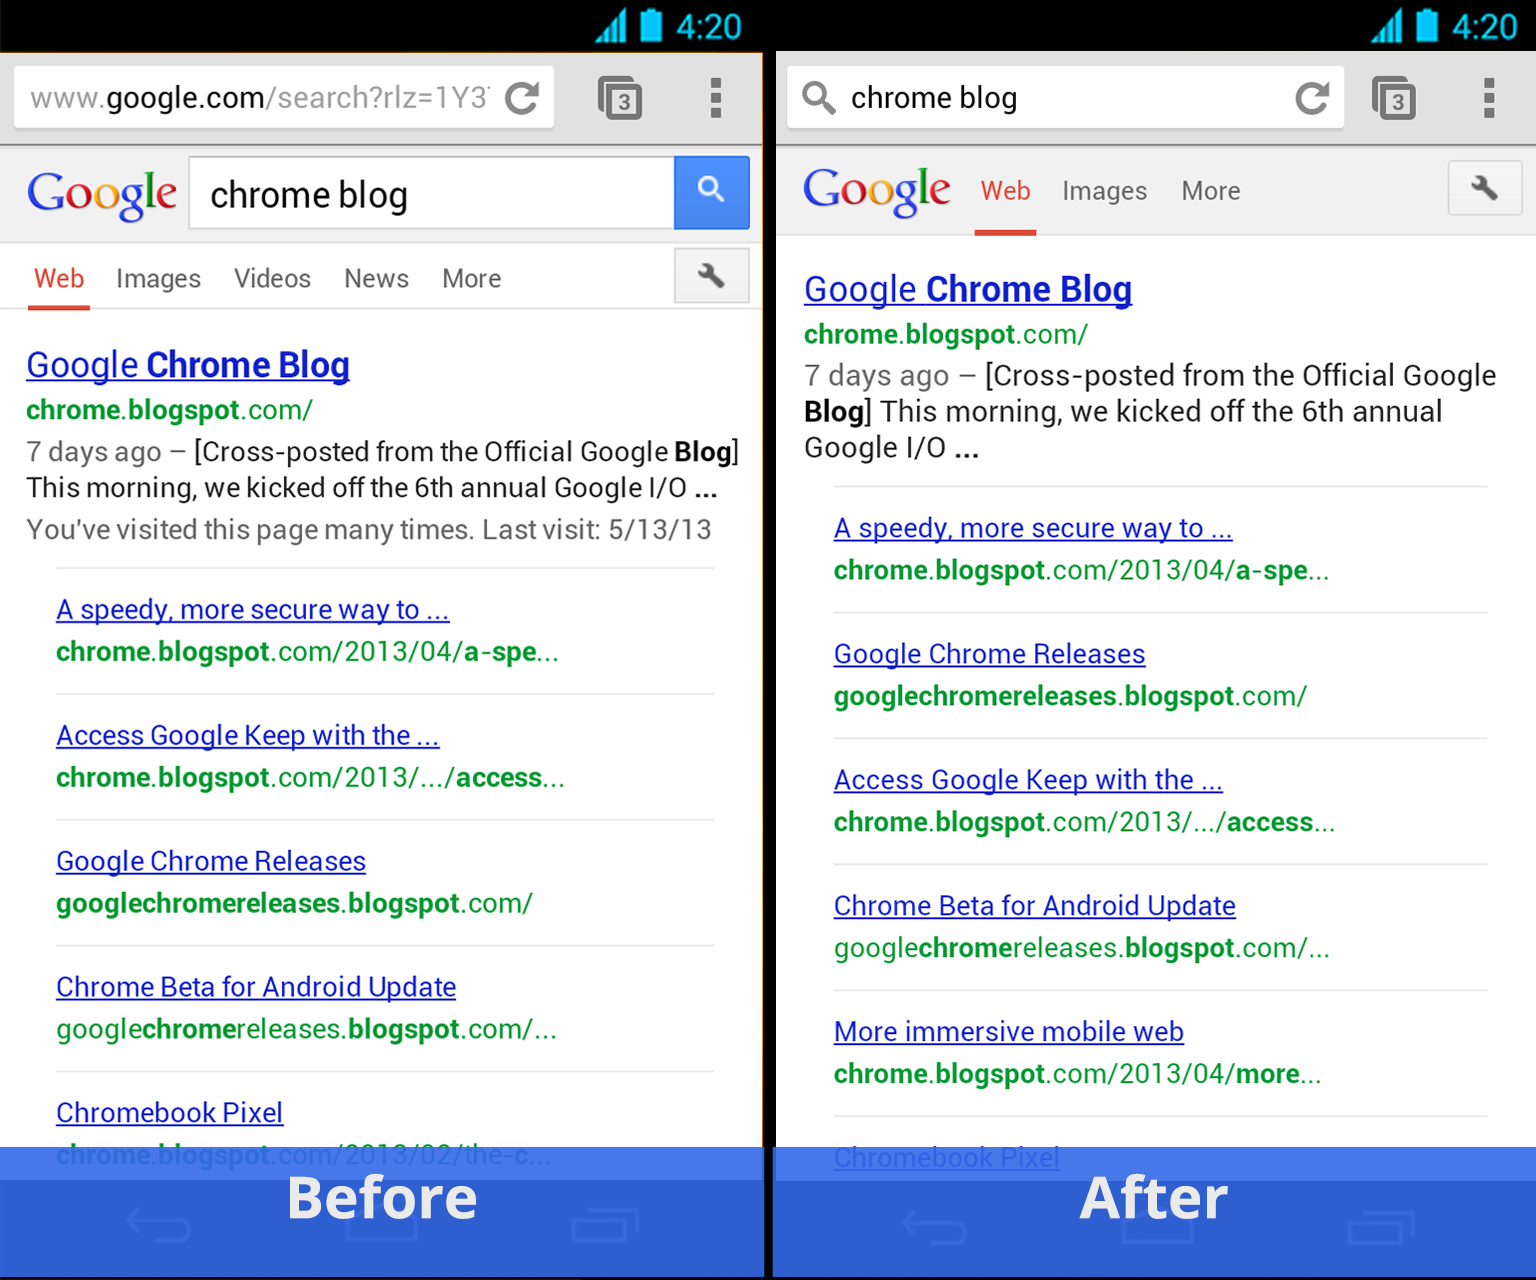 Google Chrome 14 1 apk for android 2 3 Gingerbread free download